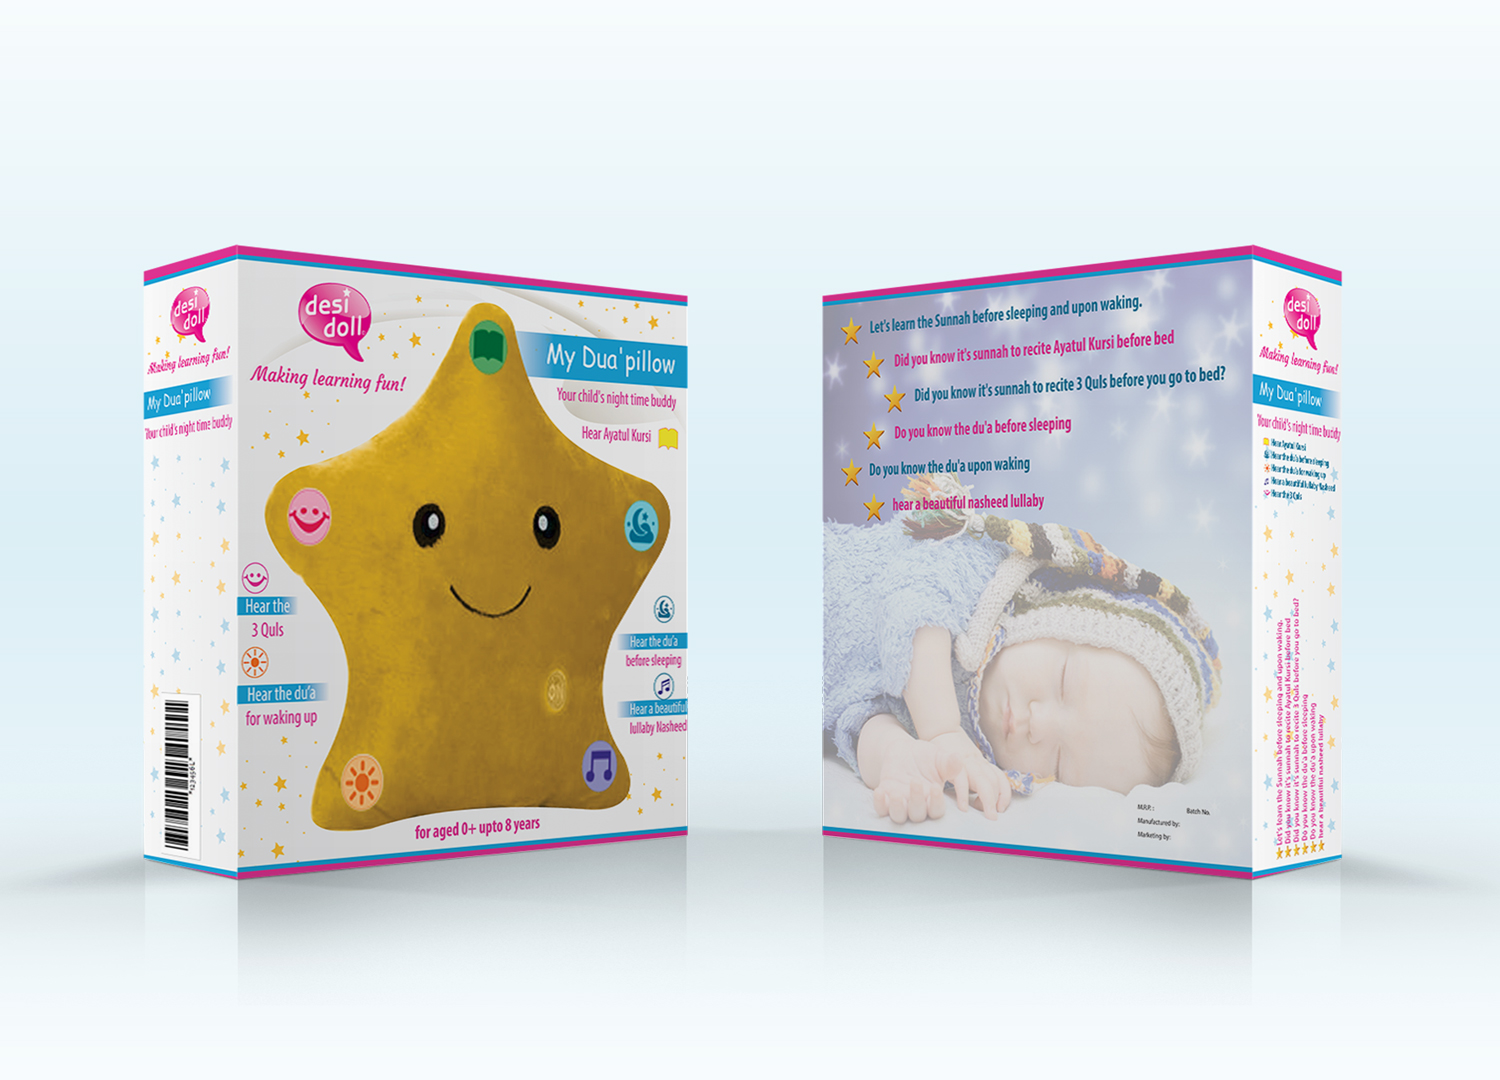 playful modern toy store packaging design for the desi doll